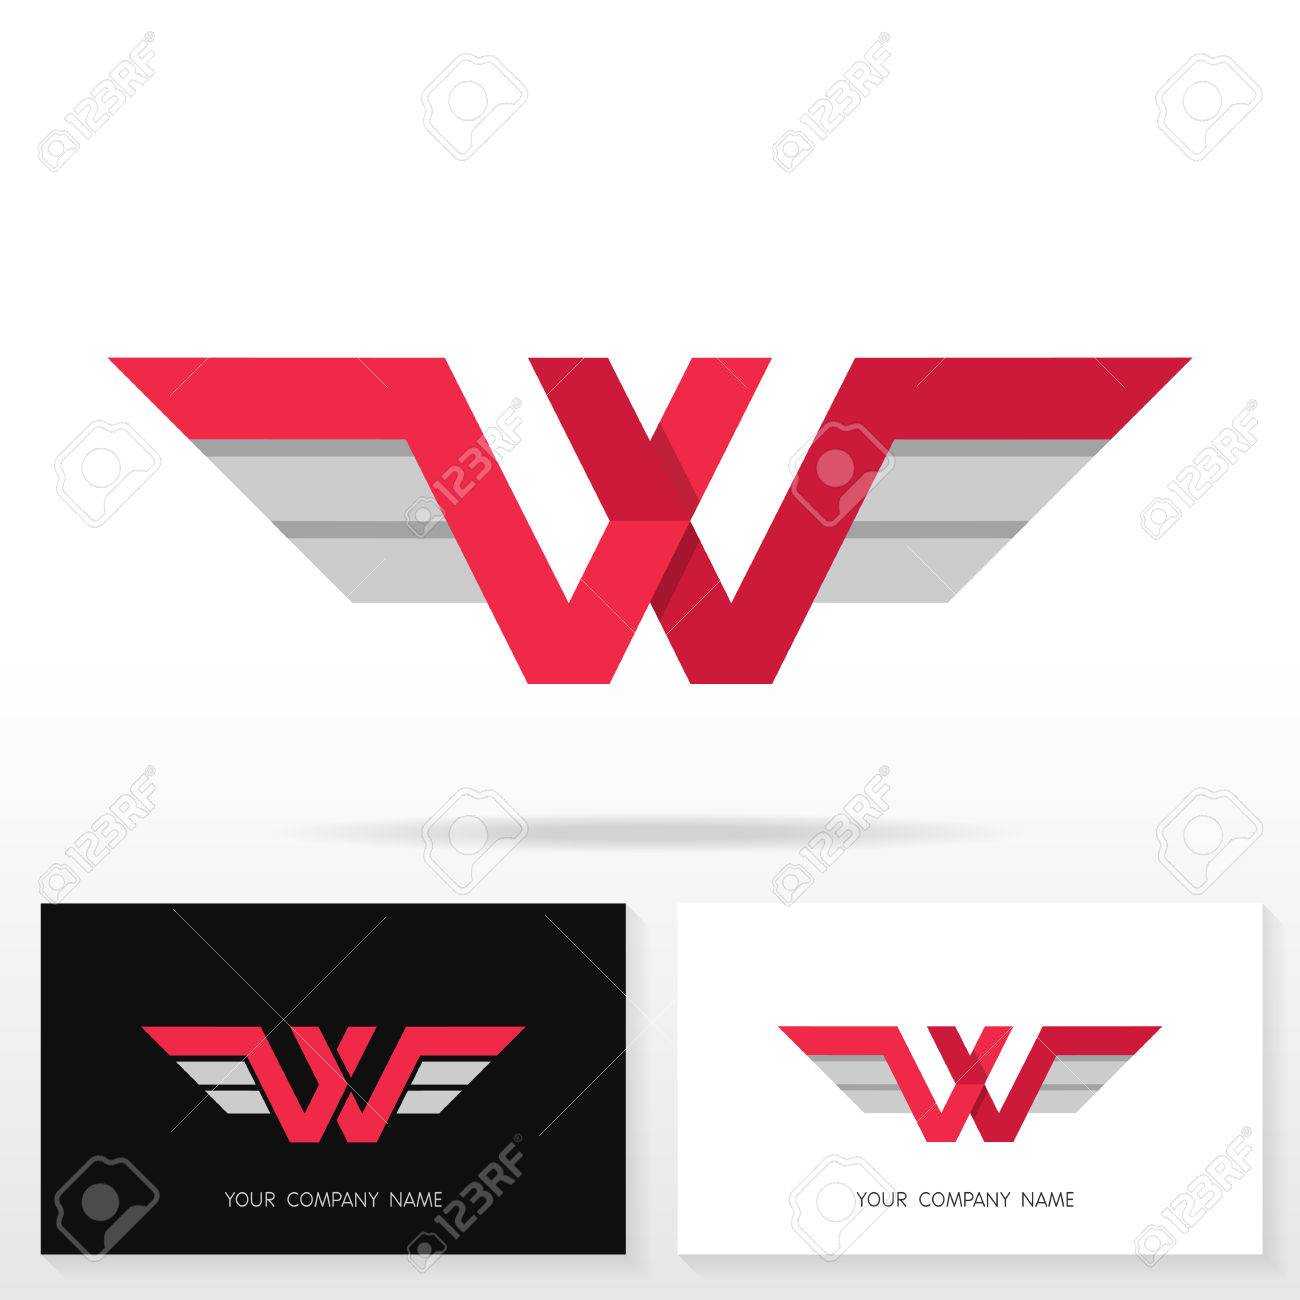 Letter w logo design business sign and business card templates banco de imagens letter w logo design business sign and business card templates reheart